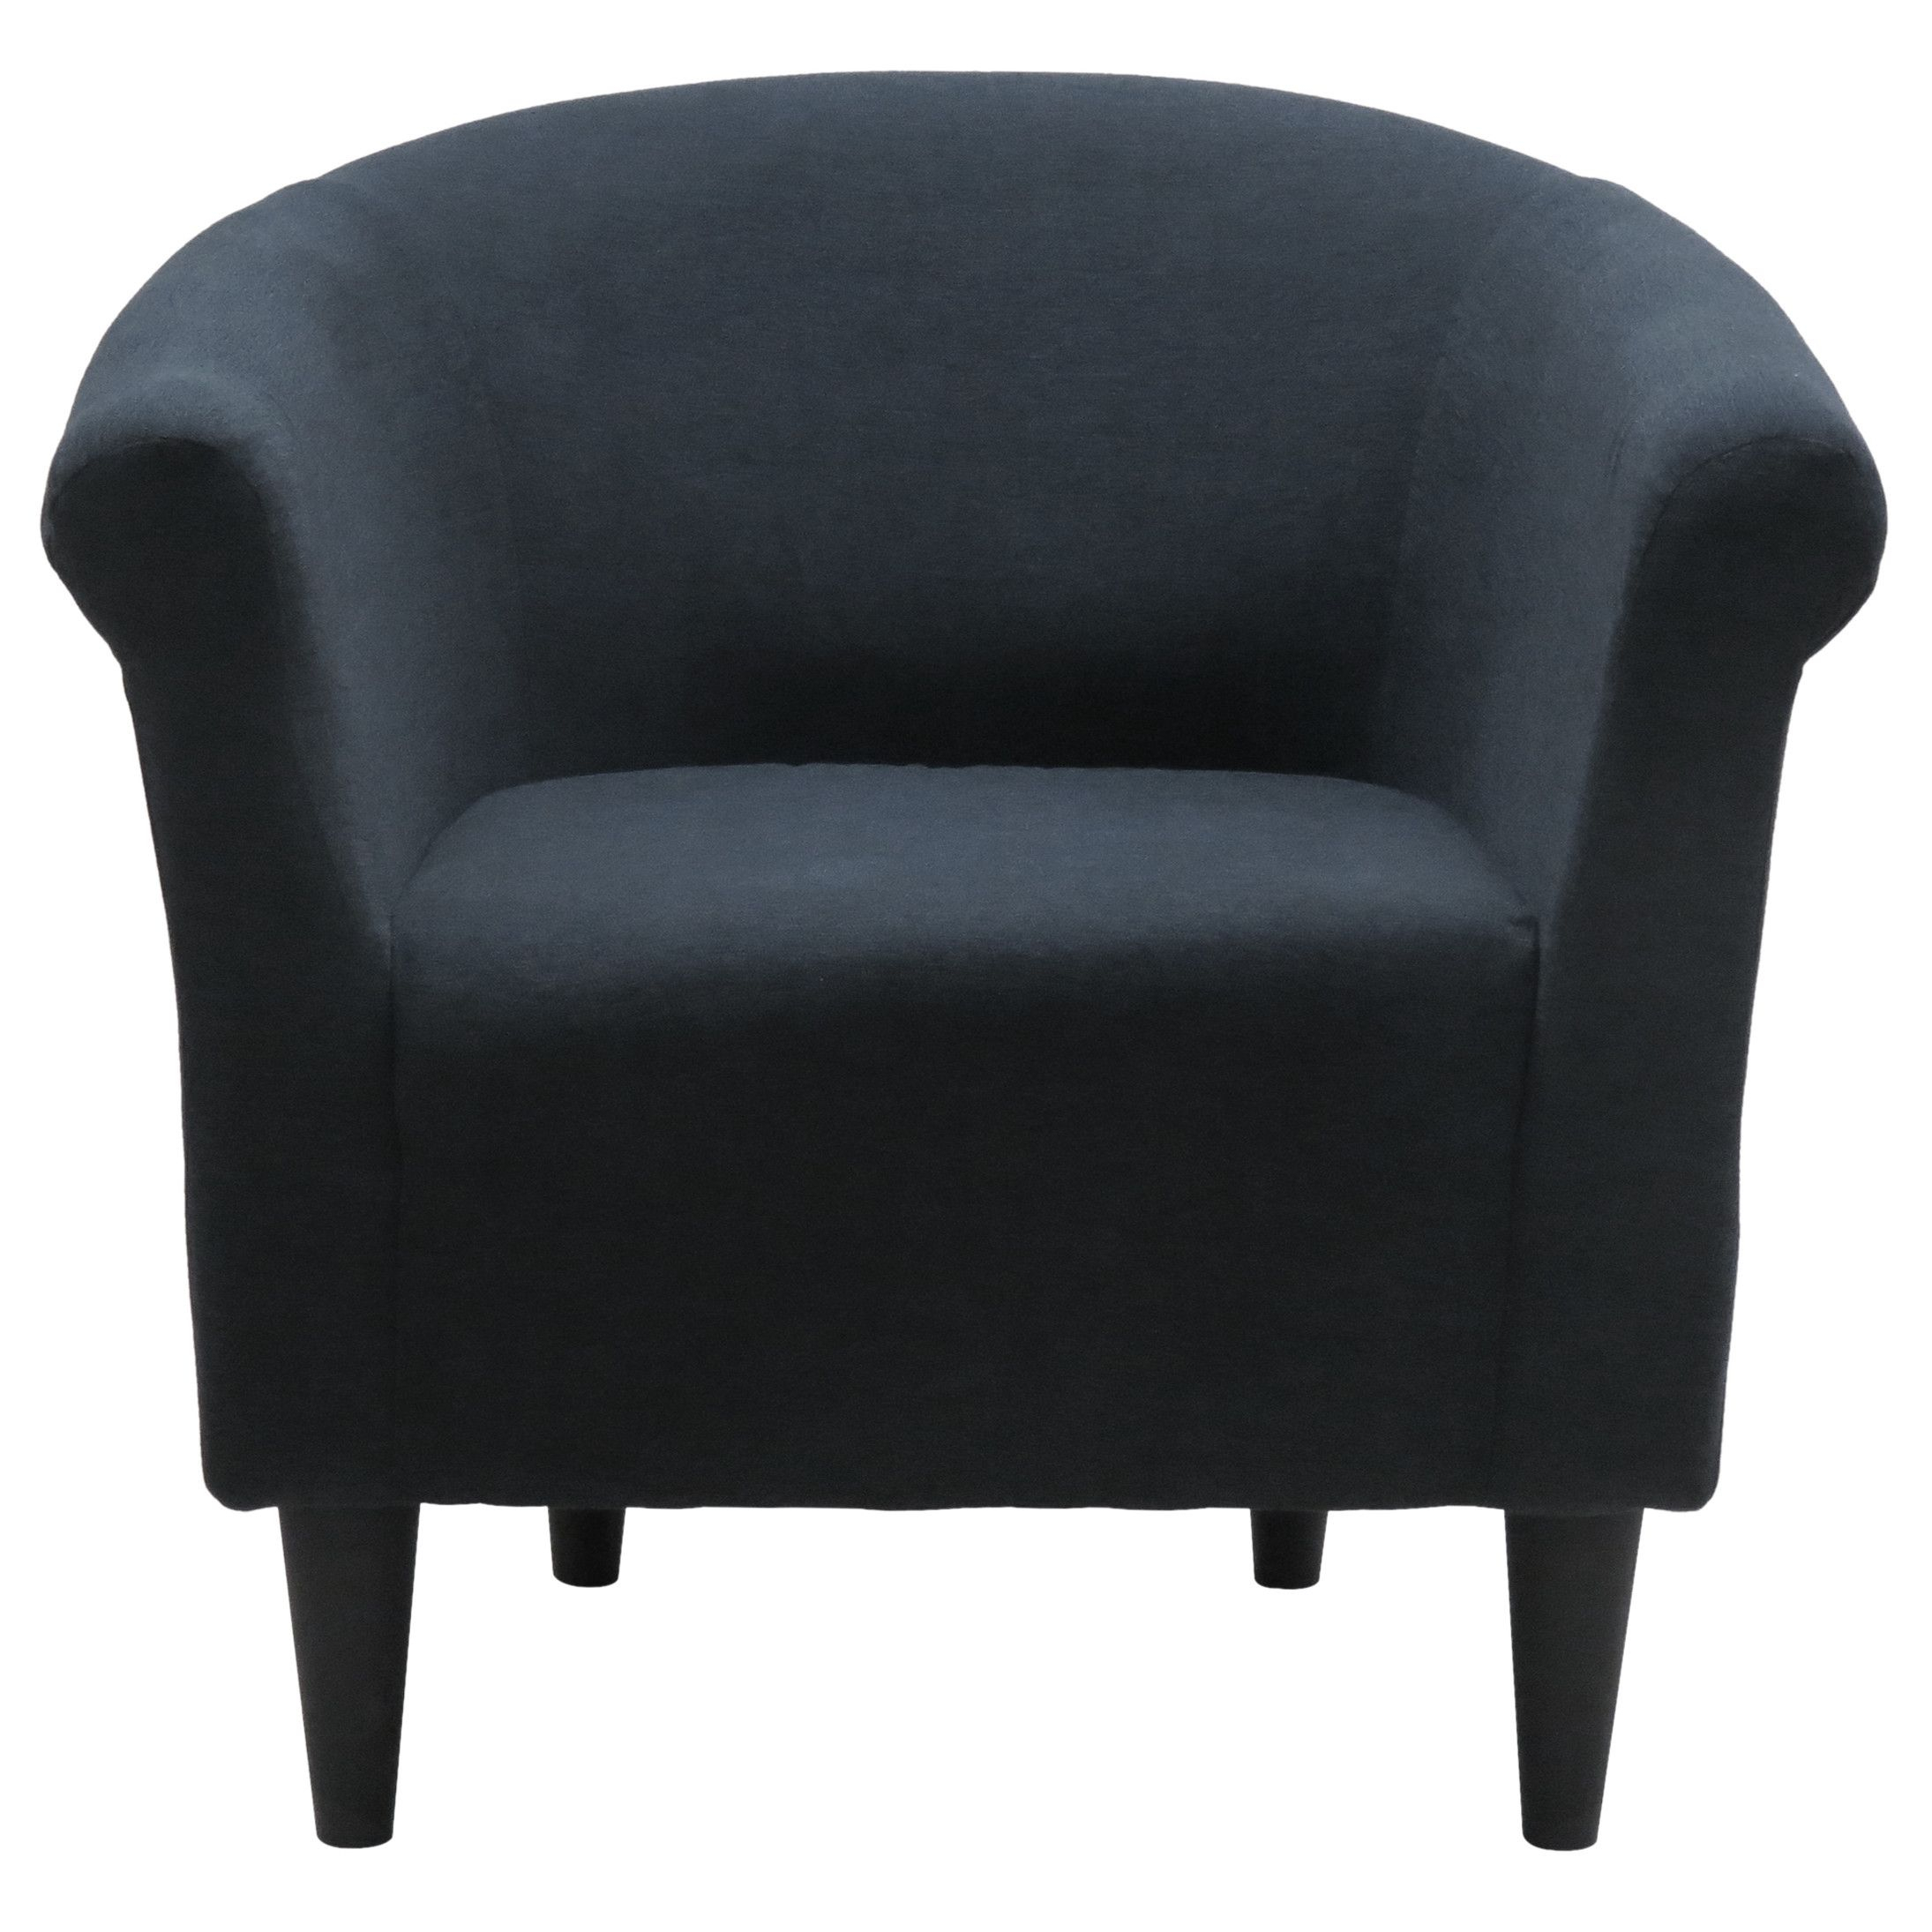 Liam Barrel Chair | Barrel Chair, Chair, Furniture With Regard To Liam Faux Leather Barrel Chairs (View 4 of 15)